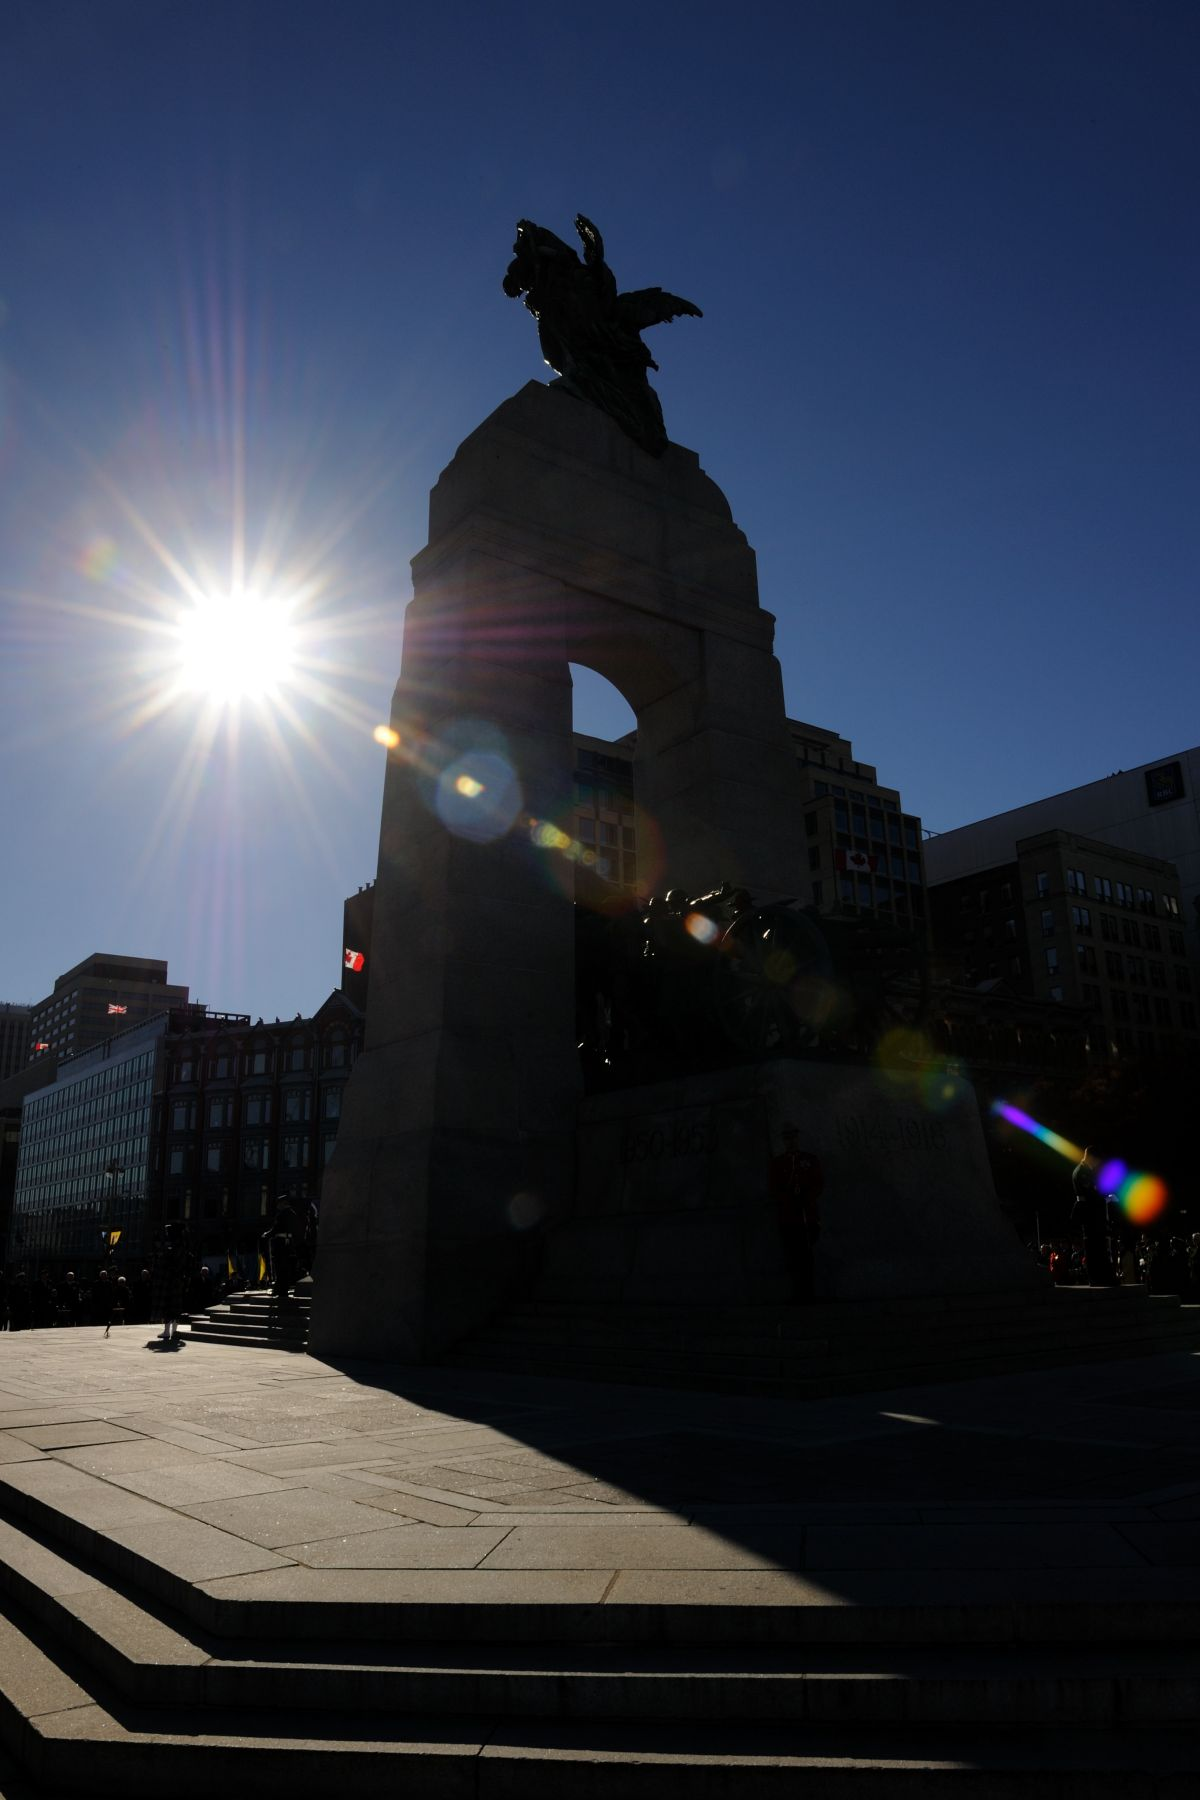 The National War Memorial, where the National Remembrance Day Ceremony takes place every year, was inaugurated in Ottawa in 1939.